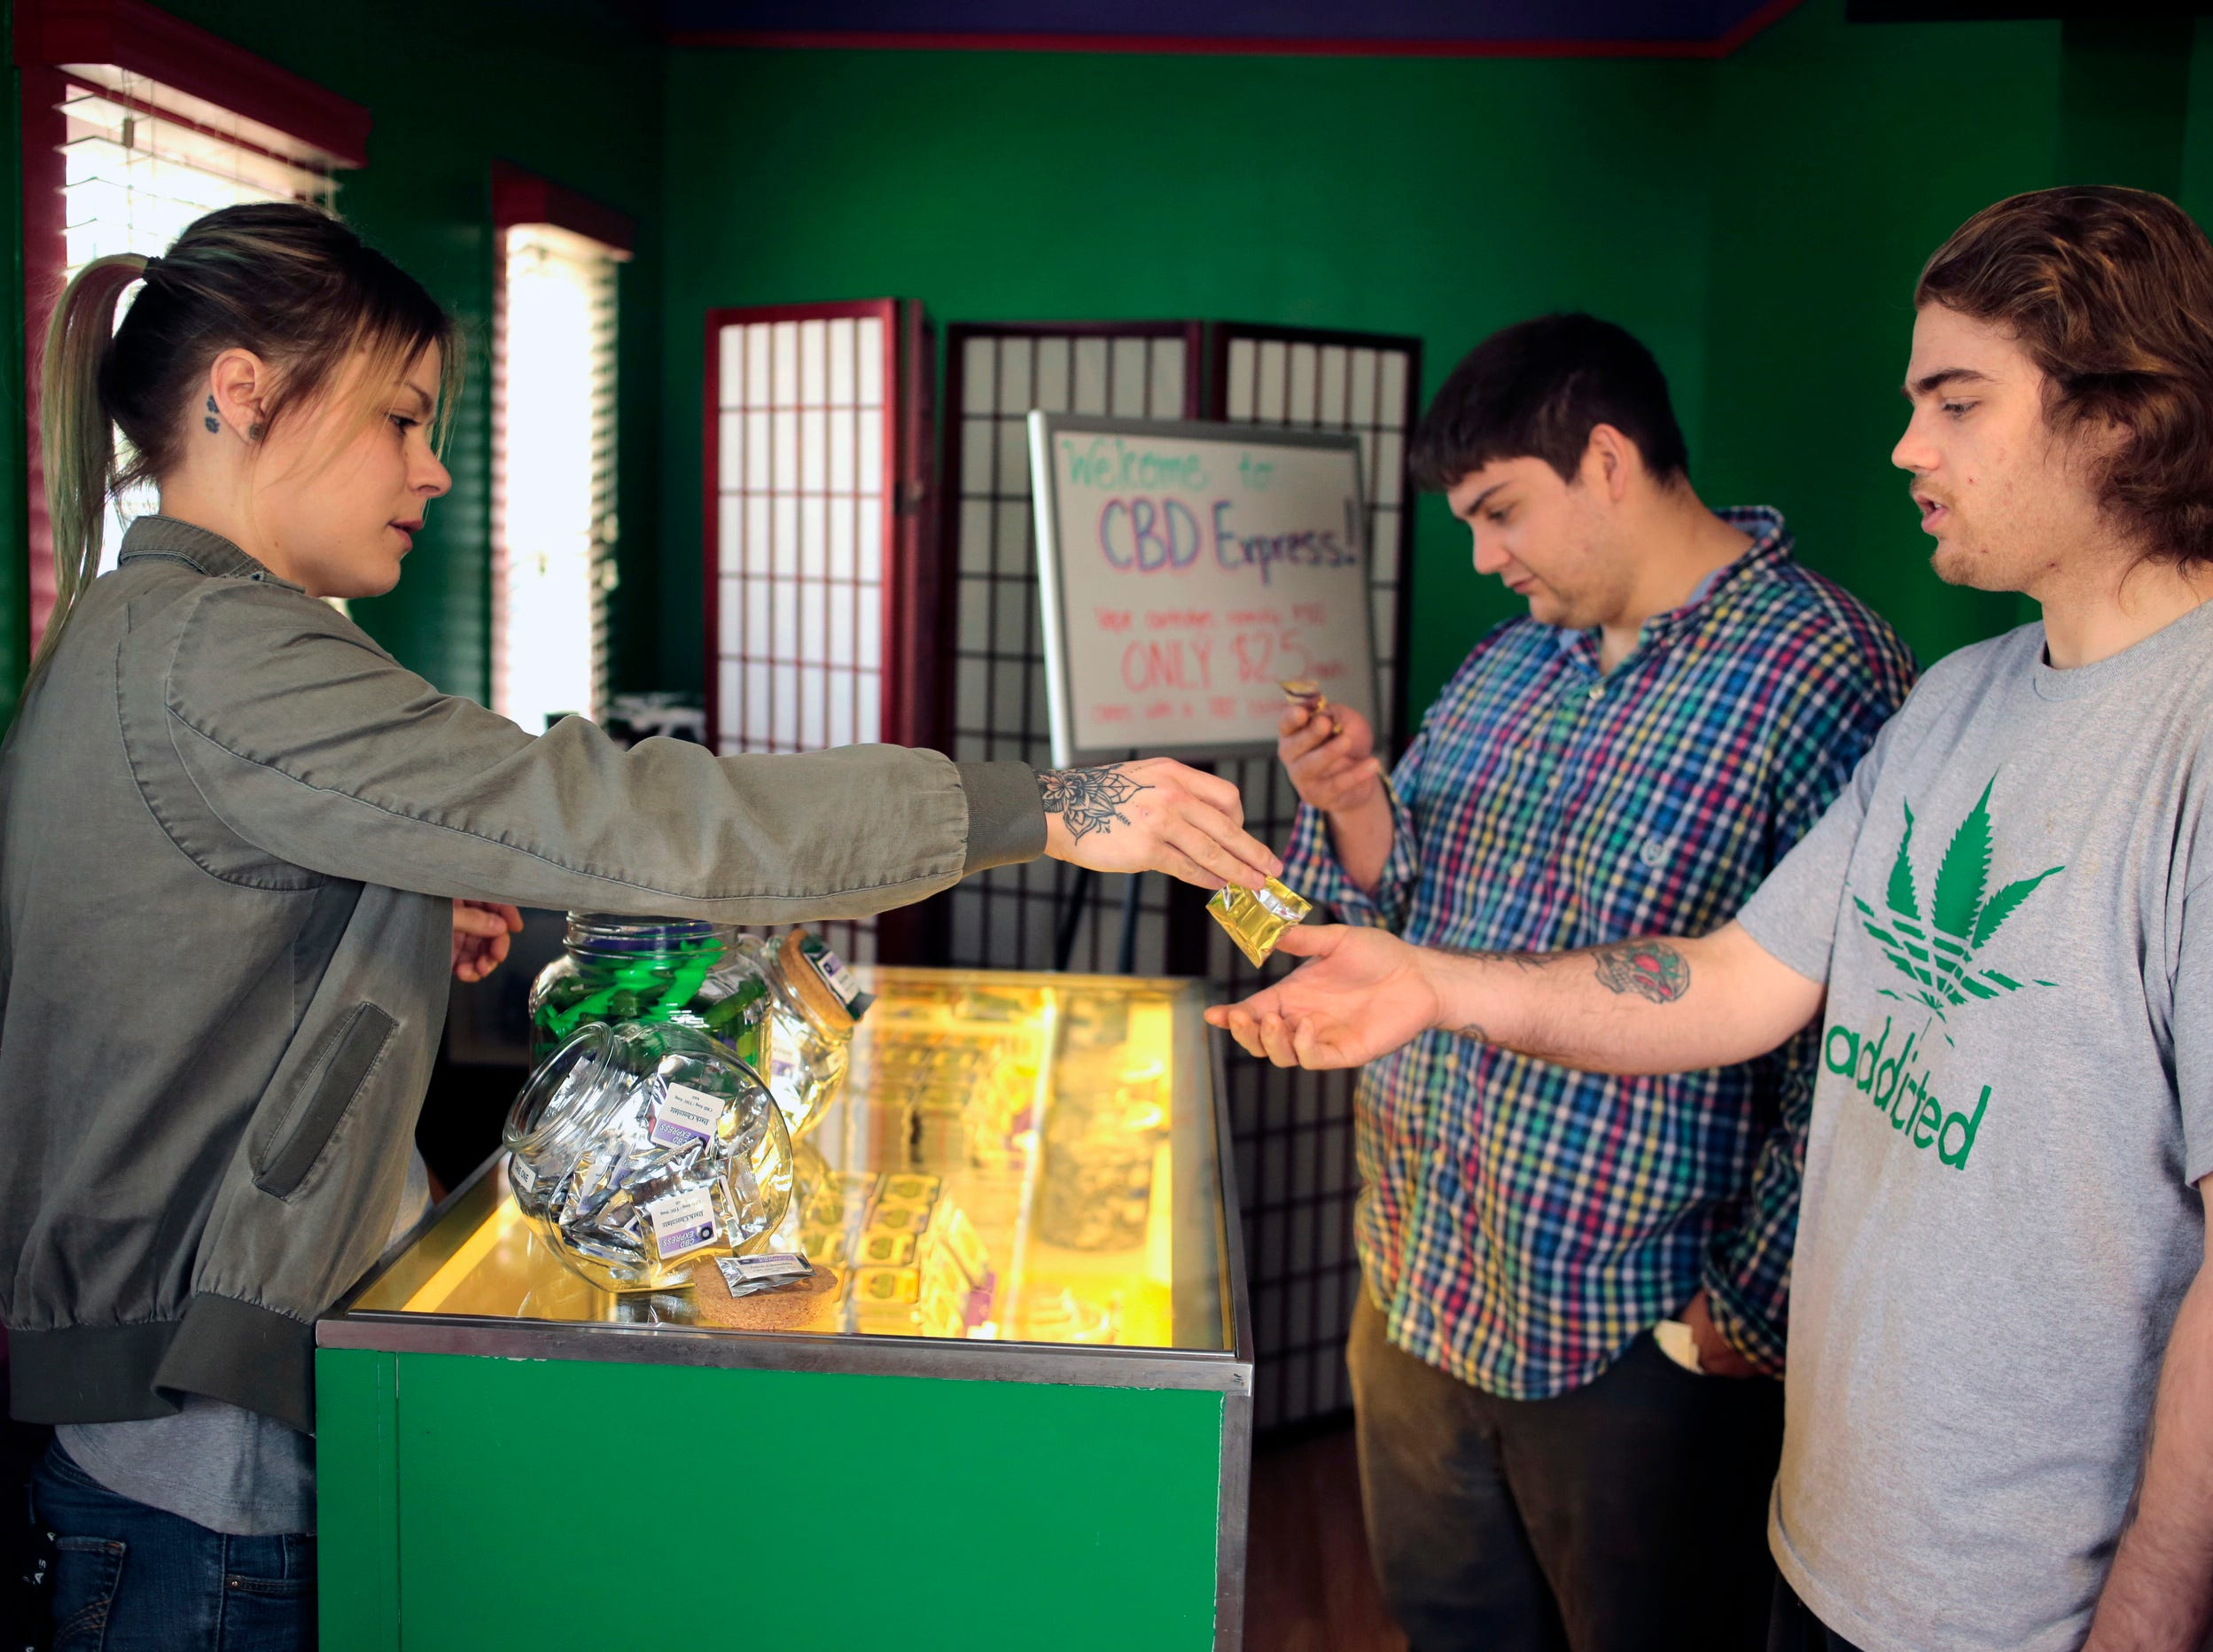 Jordin Hoefler, left, hands out a free dark chocolate edible to Tyler Rhodes, center, and Spencer Rhodes, right, during the CBD Express grand opening in Salem, Ore on  April 20, 2018 photo. The business sells CBD oils and CBD products. Applications for state licenses to grow hemp, marijuana's non-intoxicating cousin, have increased more than twentyfold since 2015 and Oregon now ranks No. 2 behind Colorado among the 19 states with hemp cultivation.